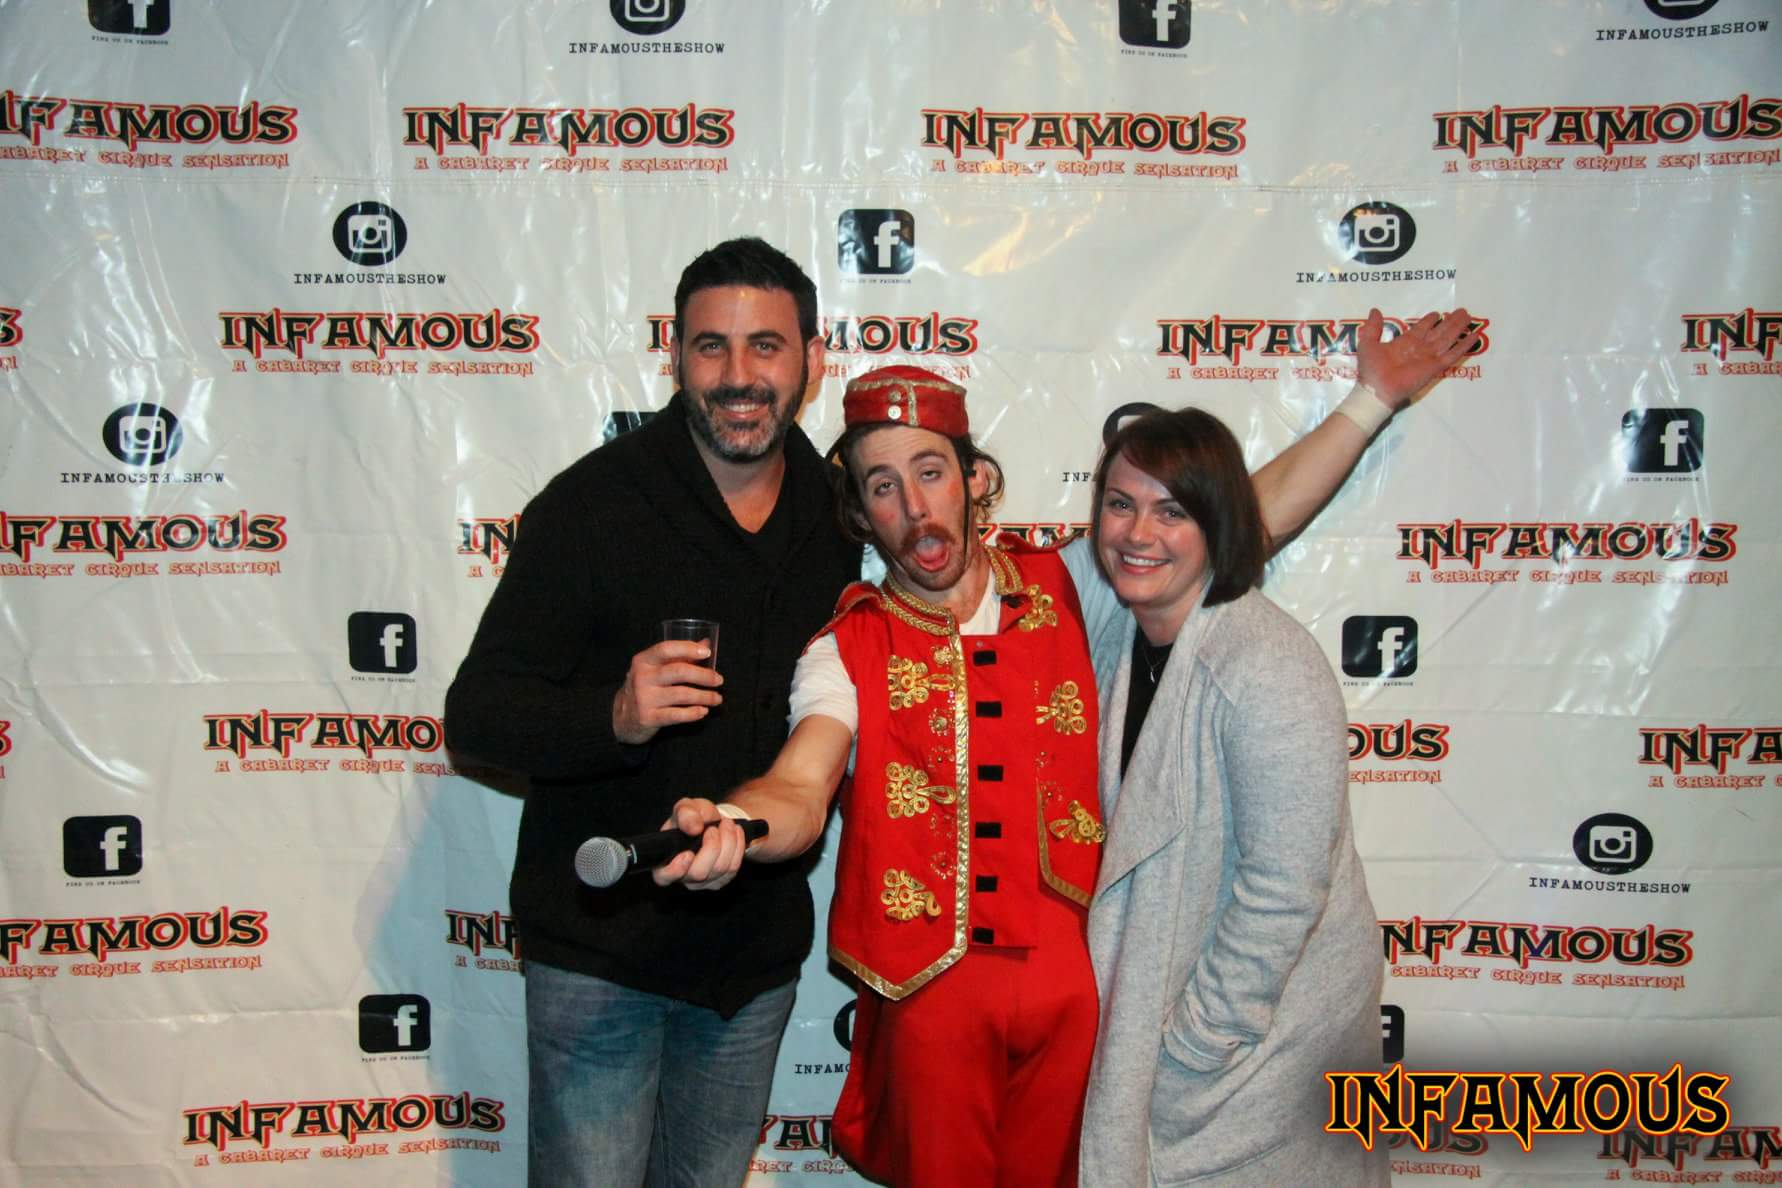 Michael Doig & Louise Connolly at Infamous Circus